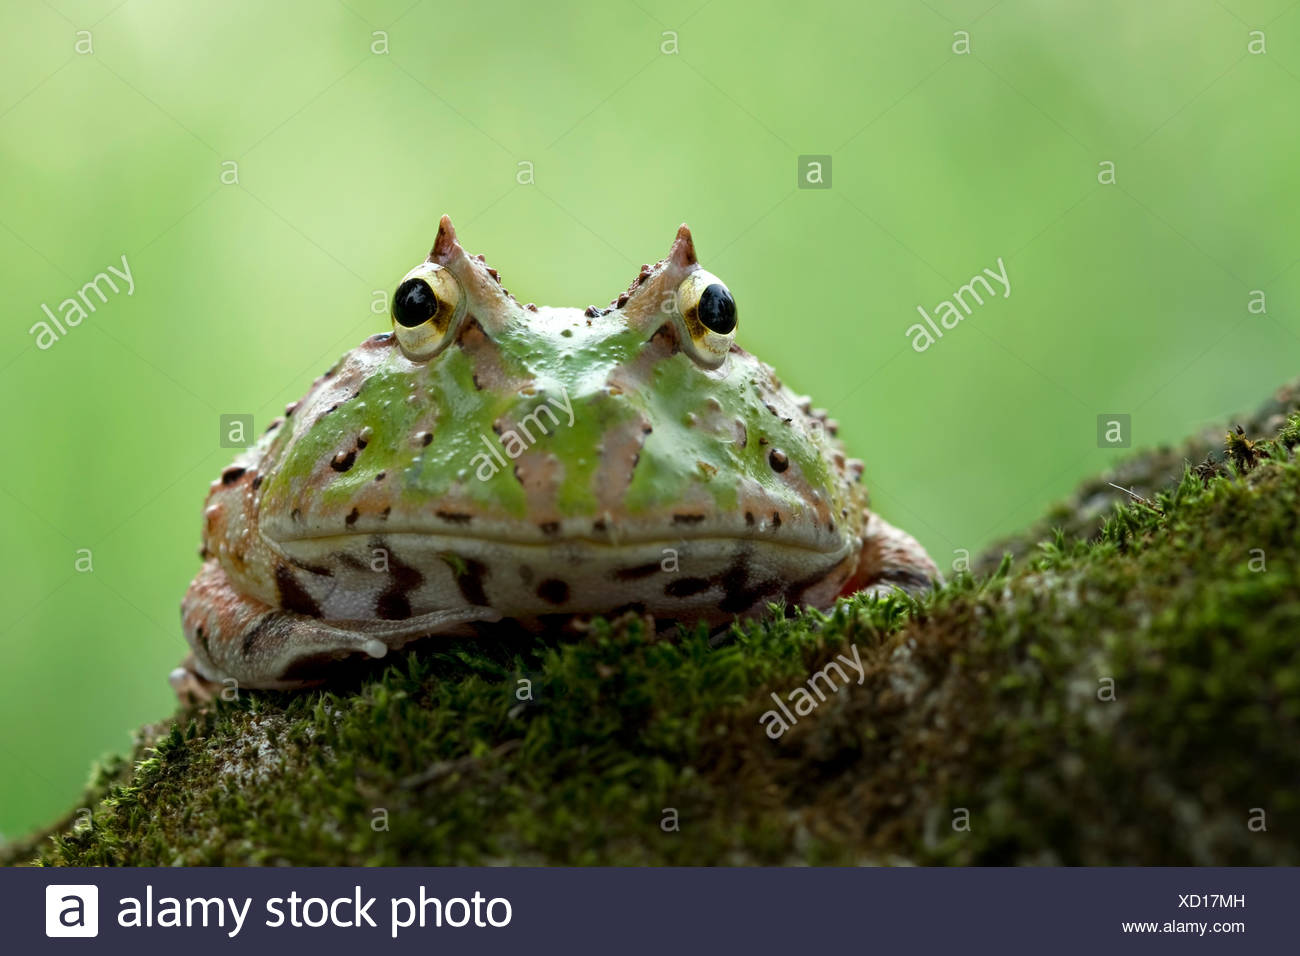 Grenouille Pacman assis sur un rocher couvert de mousse Photo Stock